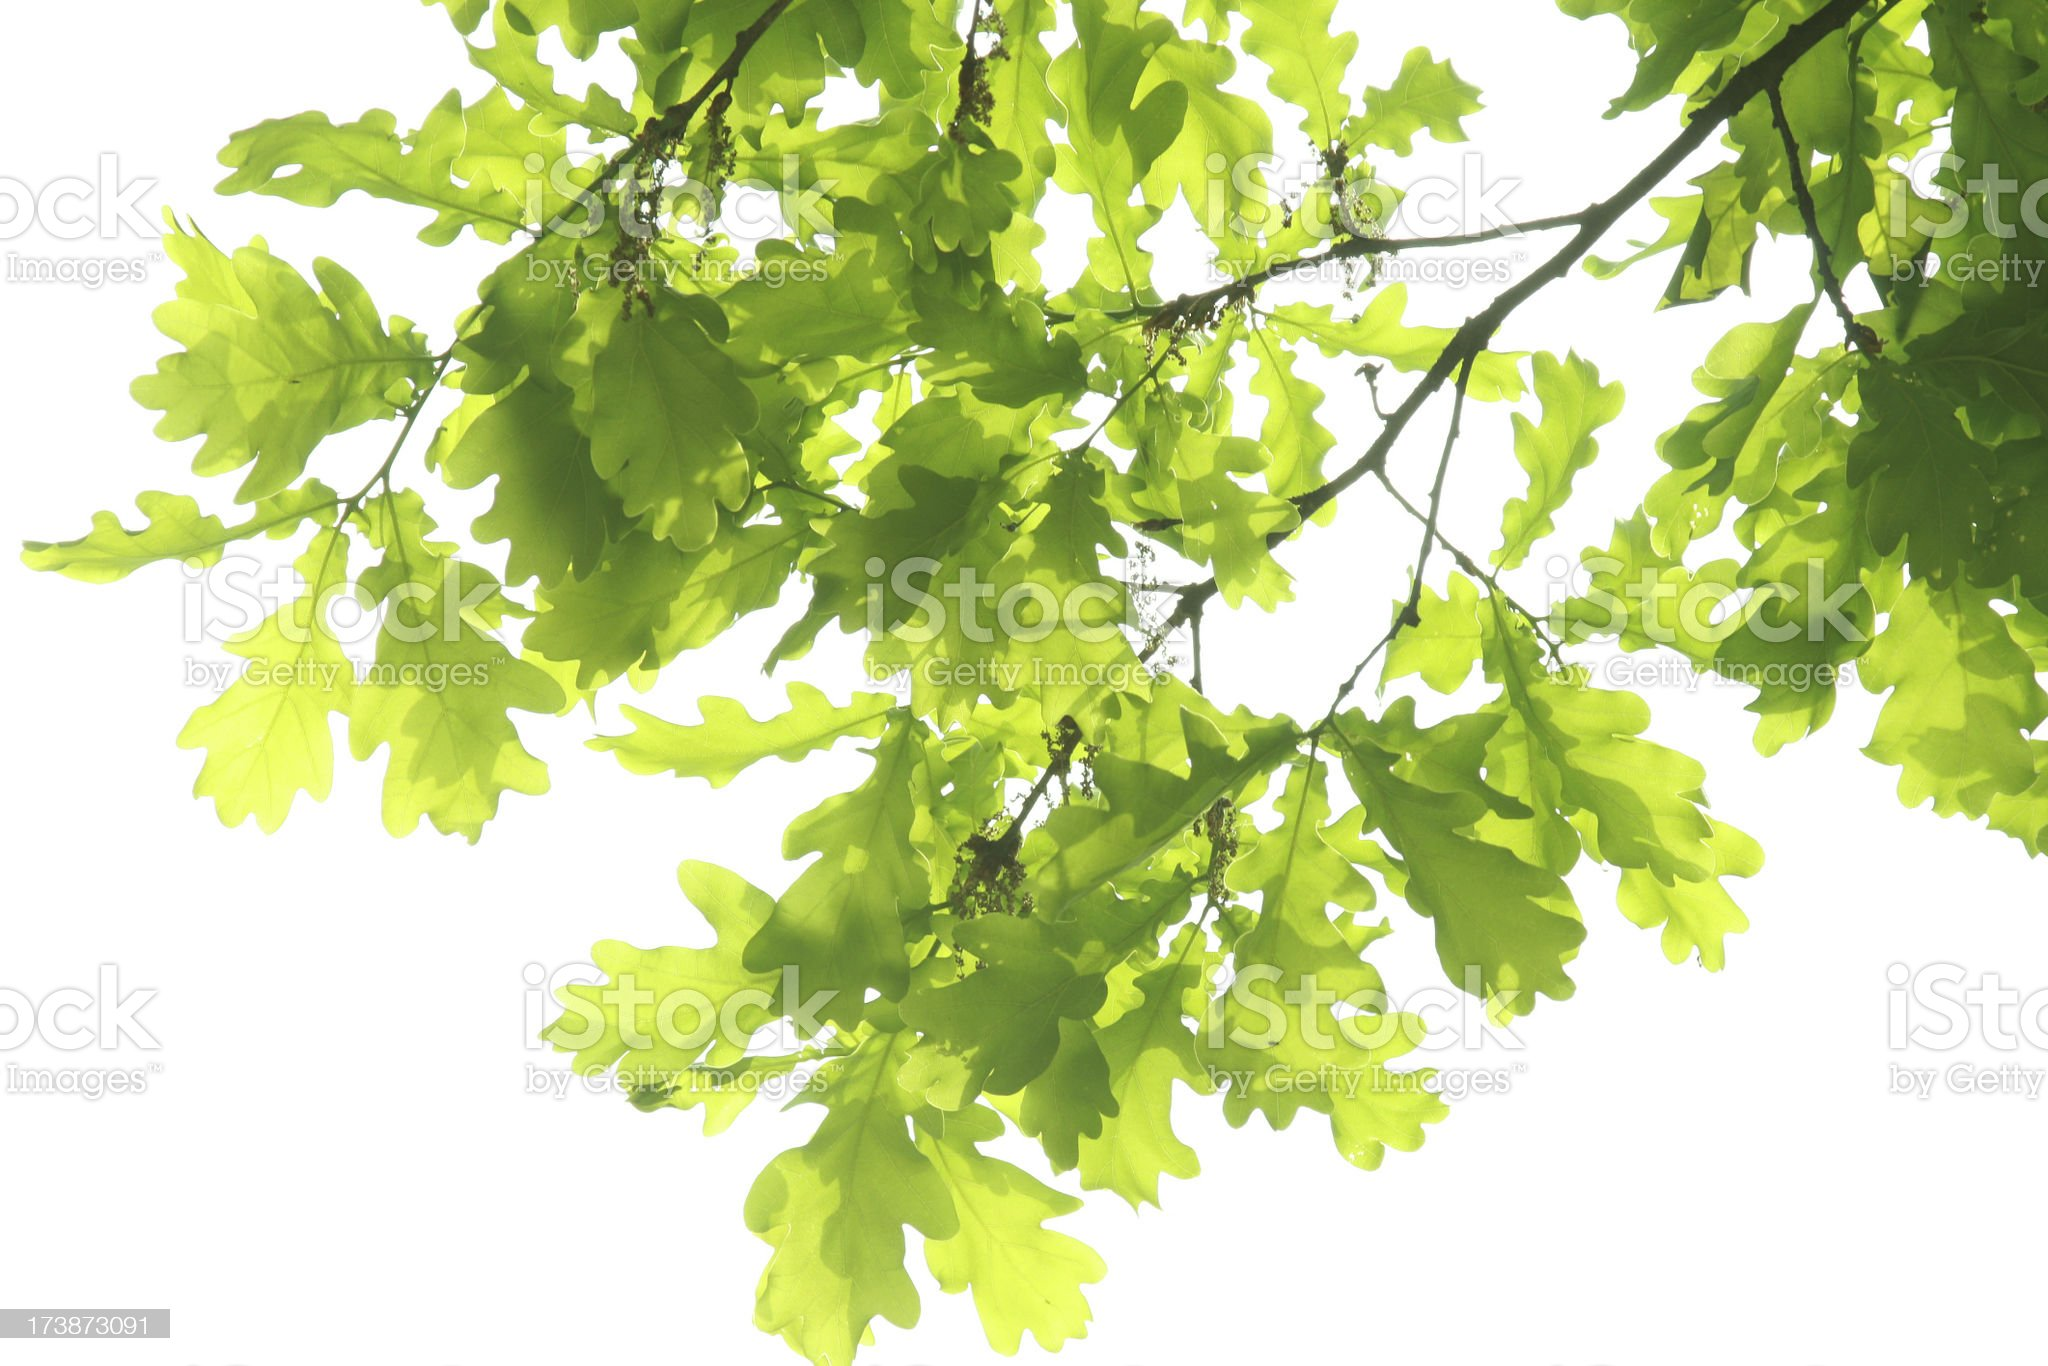 Bright green oak leaves on branches on a white background royalty-free stock photo